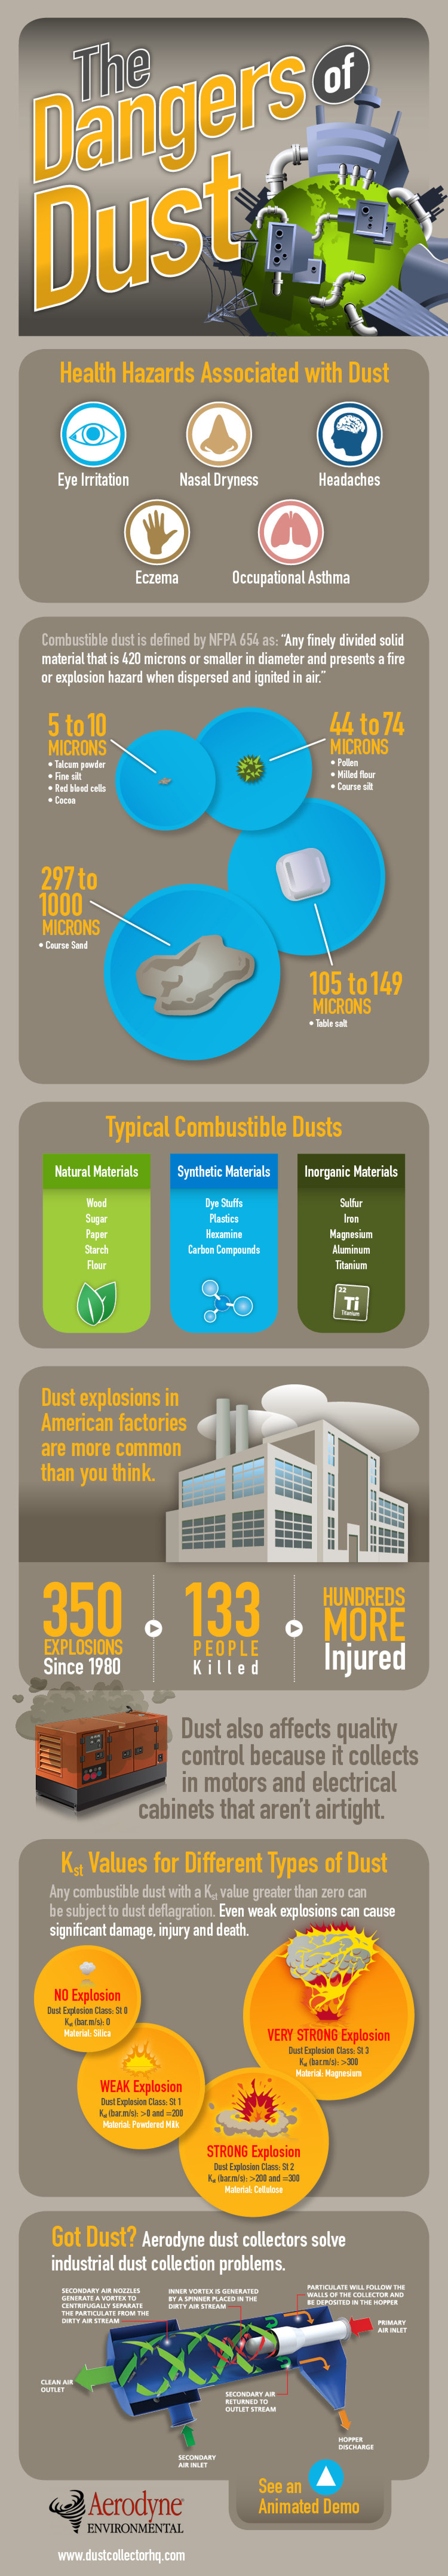 The Dangers of Dust Infographic